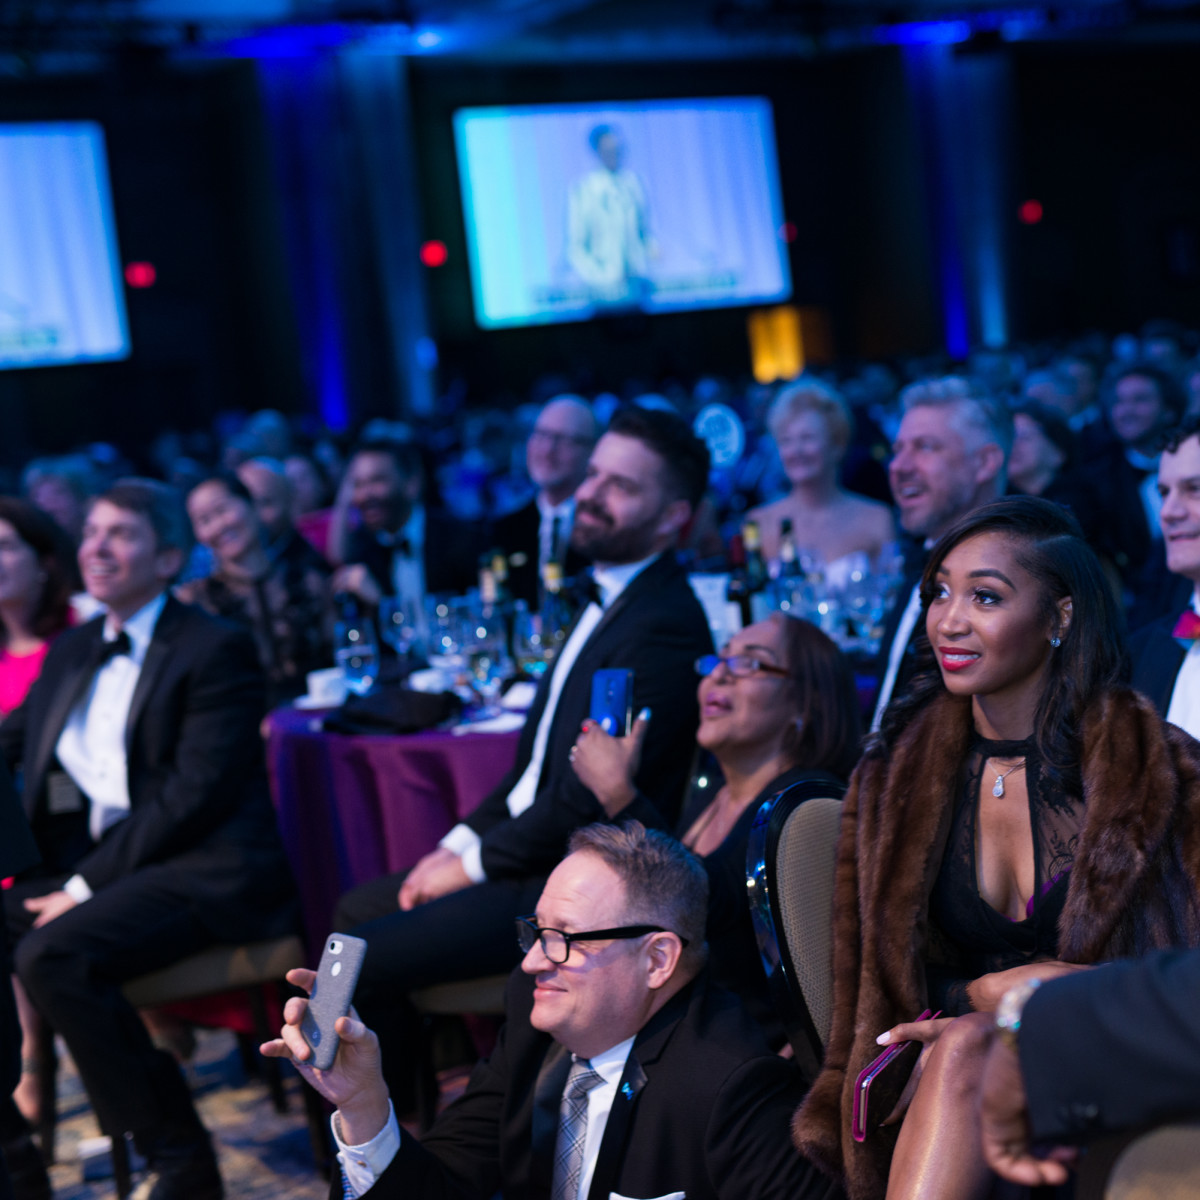 The crowd at Black Tie Dinner 2019